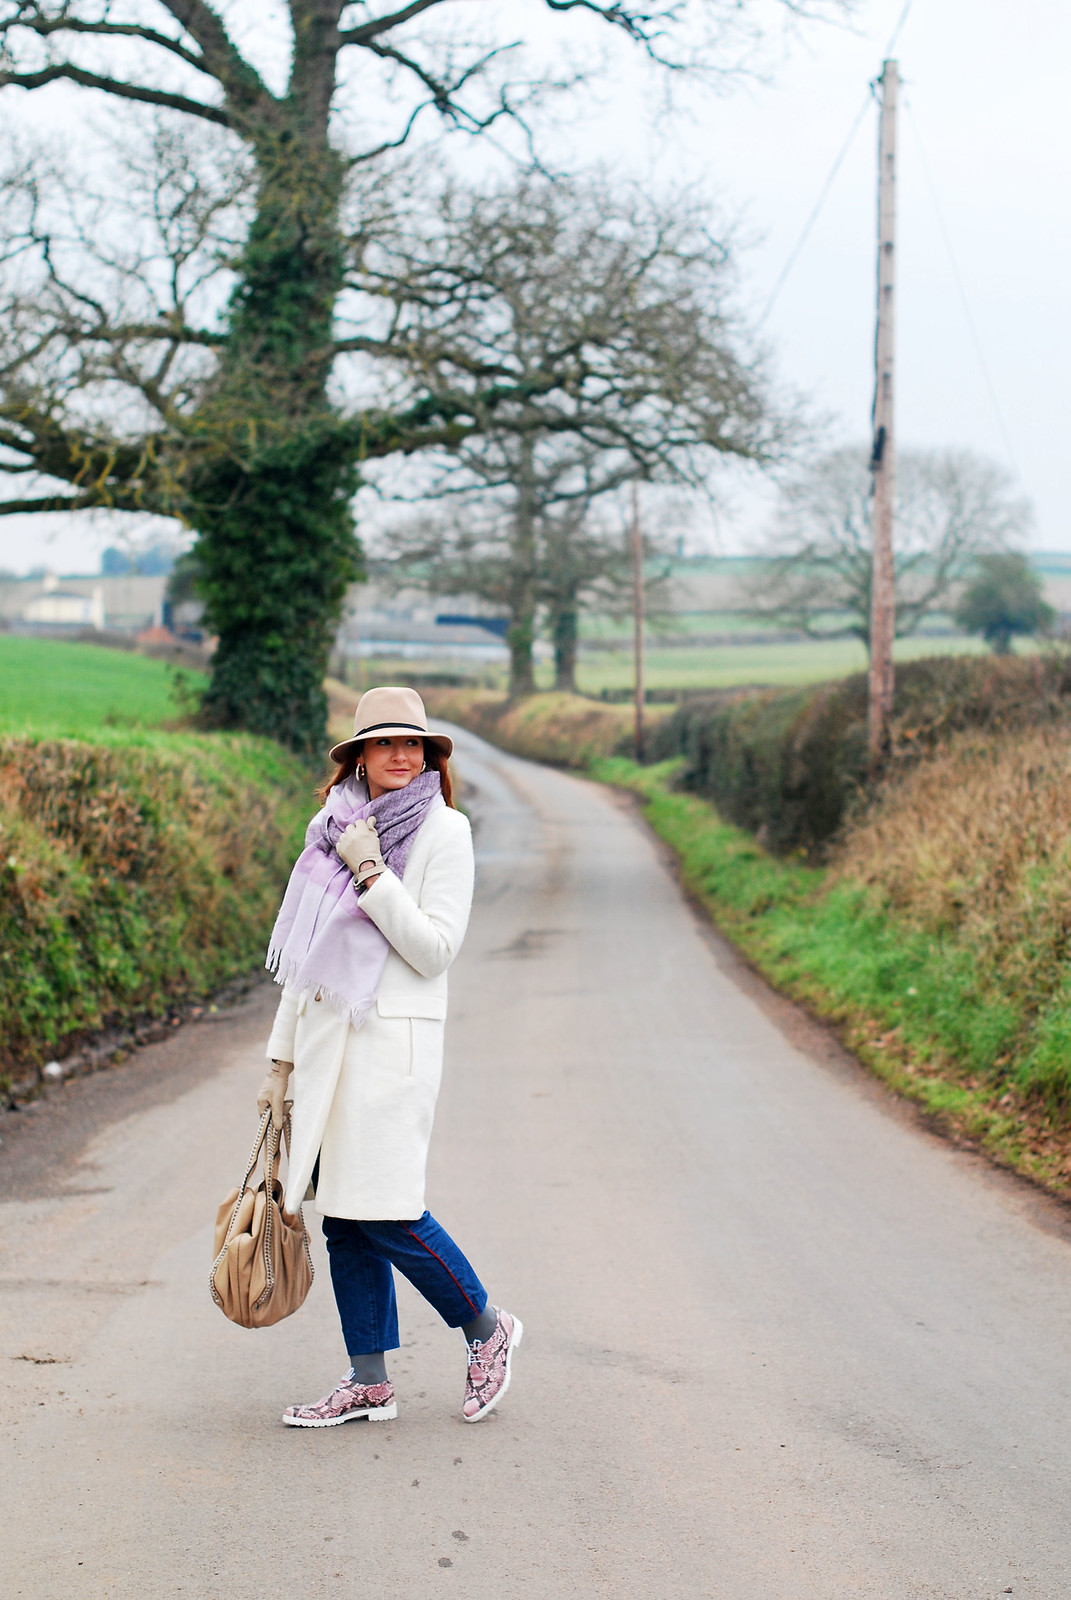 Cold weather outfit: Long white wool coat \ oversized lilac scarf \ camel fedora \ dark wash boyfriend jeans \ pink snakeskin lace up shoes | Not Dressed As Lamb, over 40 style